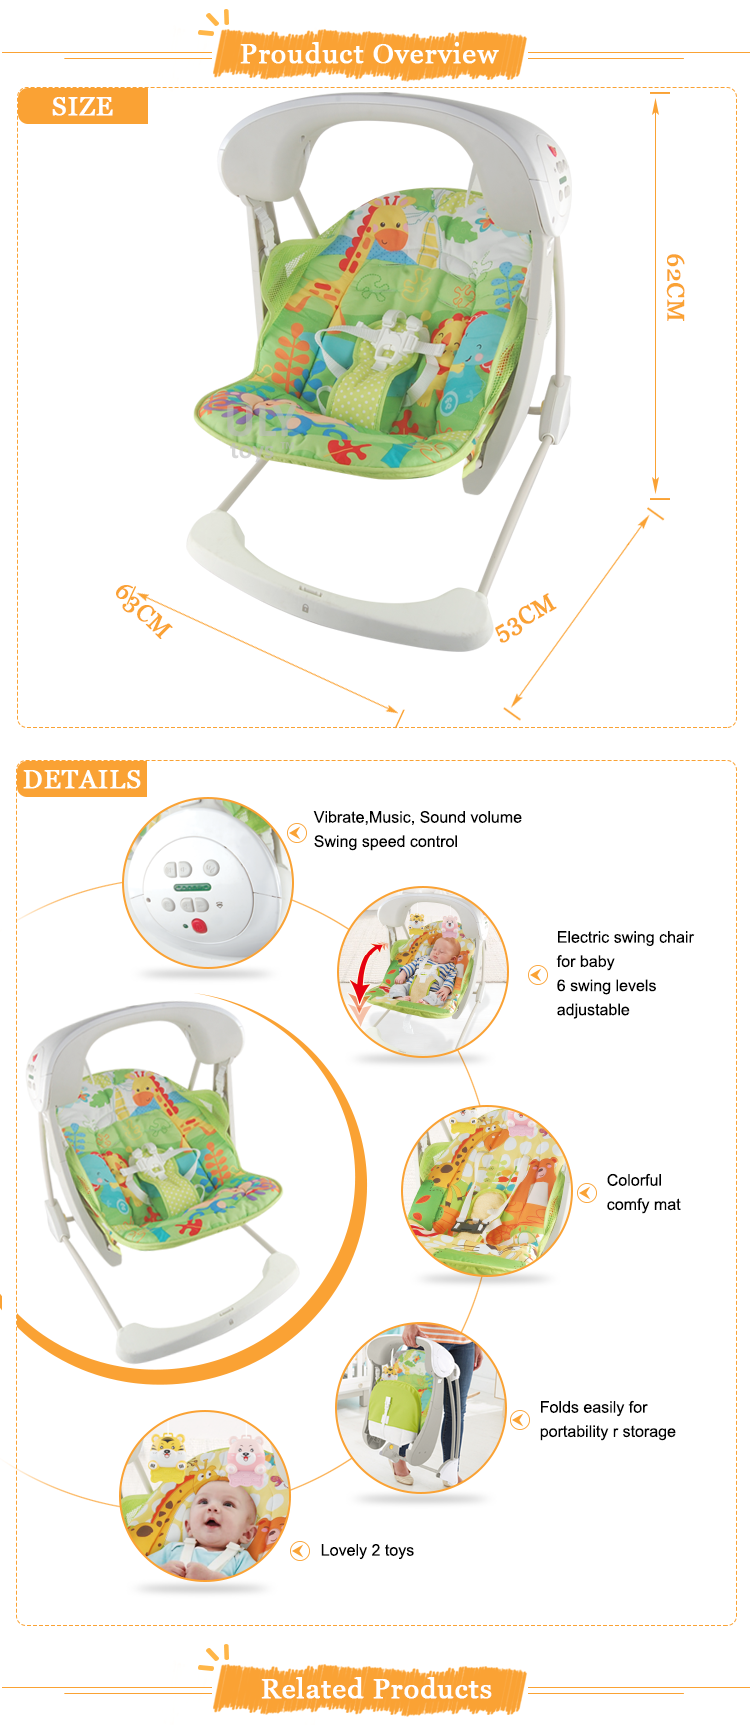 Electric baby rocker chair - New Moving Baby Rocker Music And Vibrate Electric Baby Swing Chair